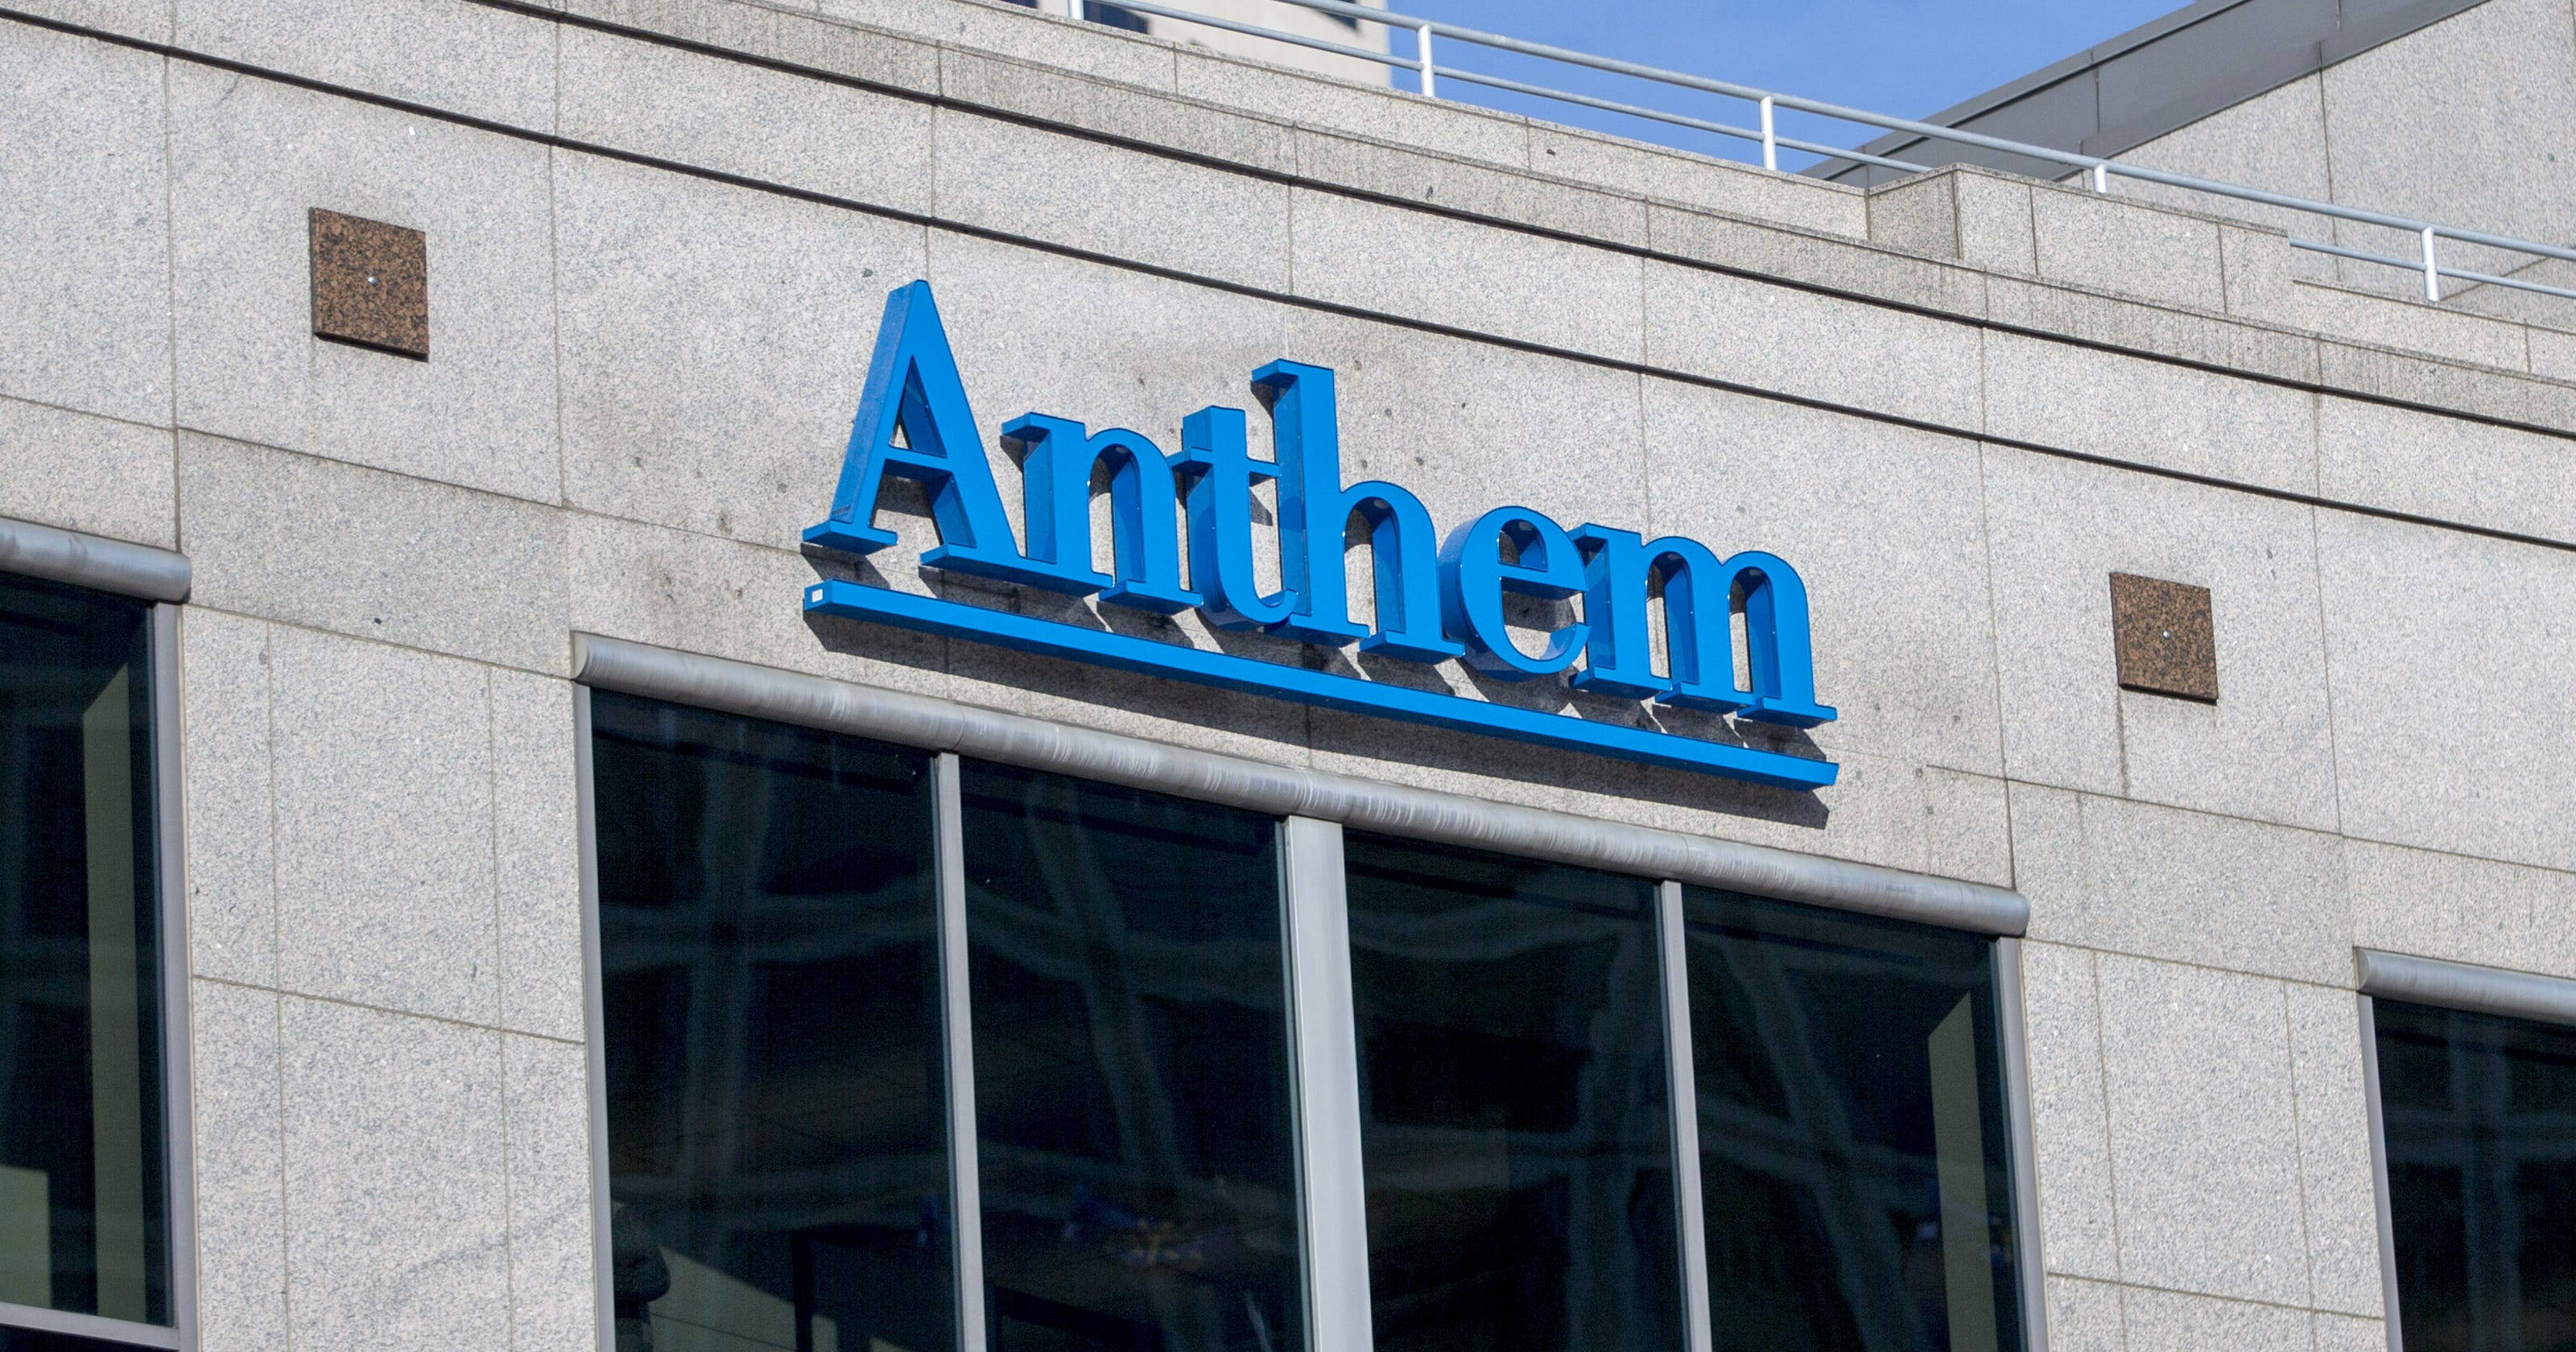 Open Class Action Lawsuits >> Anthem settles a security breach lawsuit affecting 80M